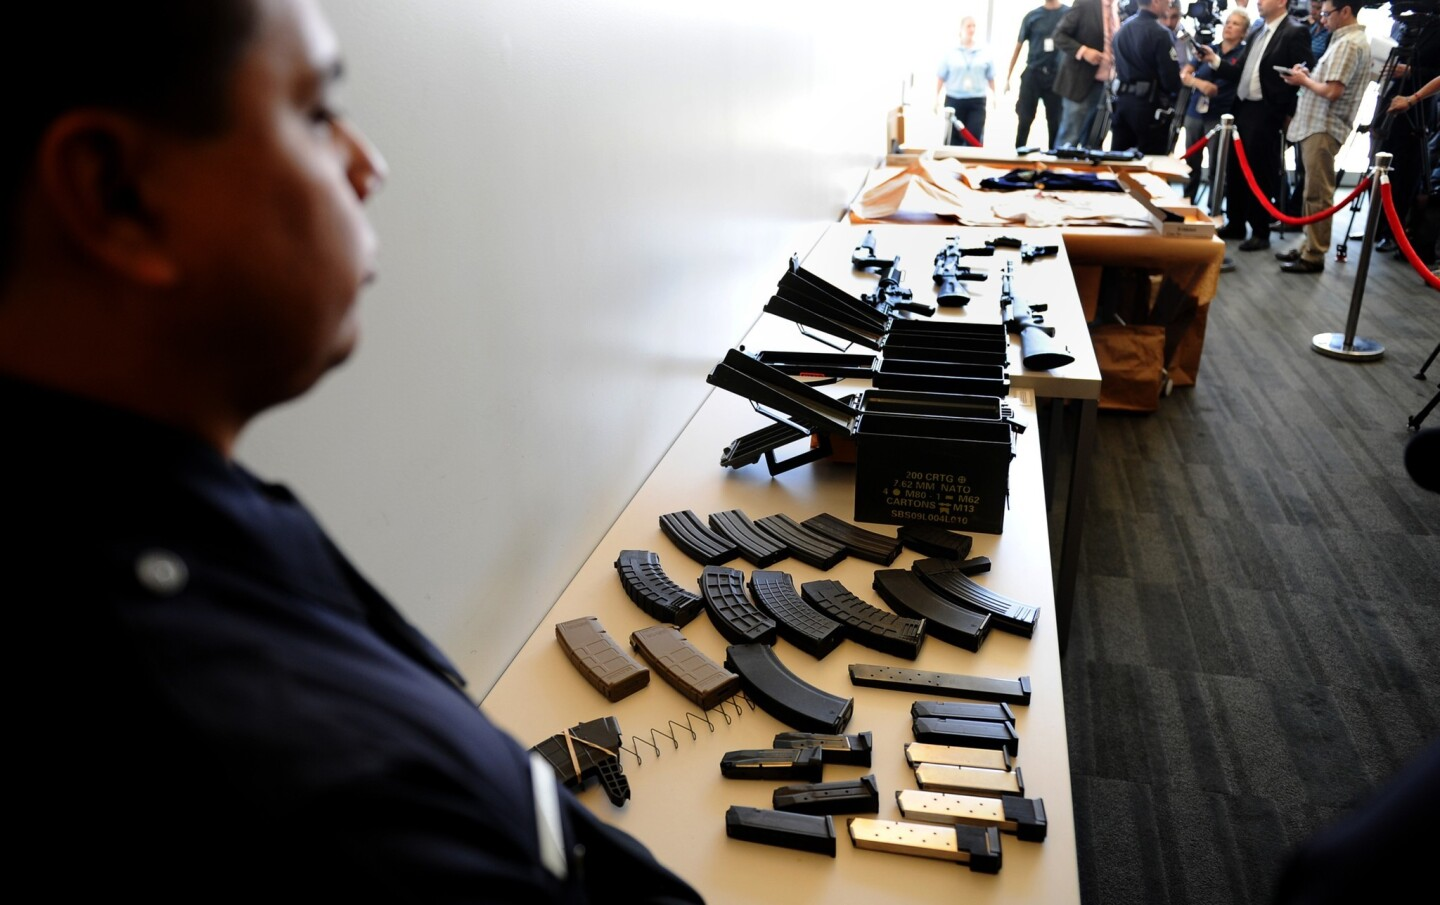 An officer stands by a cache of weapons that were found at the home of Daniel Yealu, the man accused of shooting one officer in the lobby of a police station.